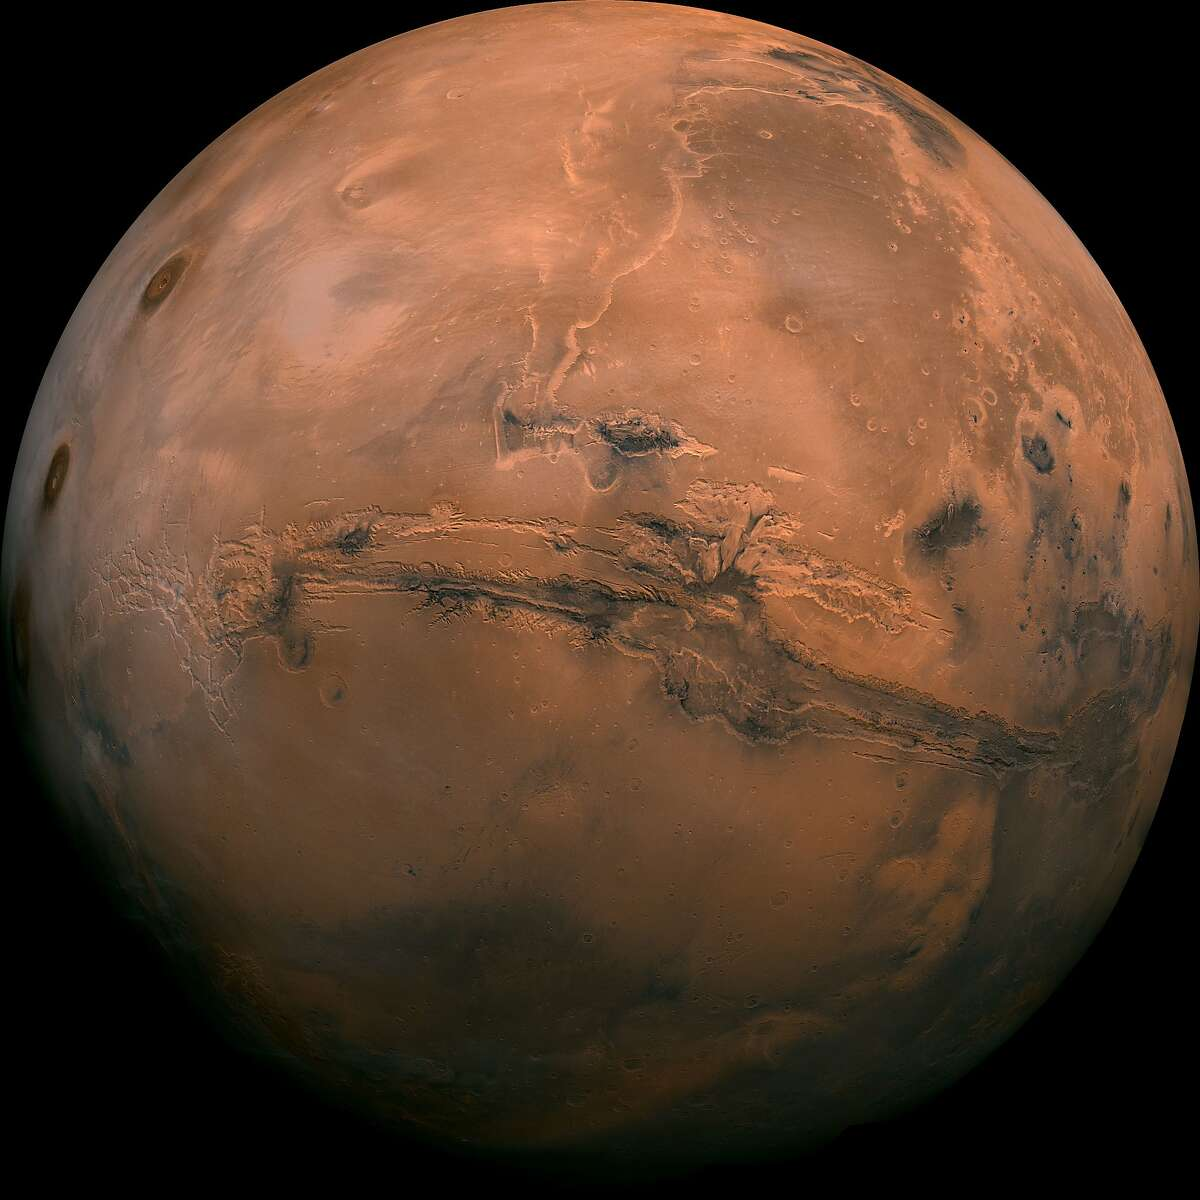 FILE - This image made available by NASA shows the planet Mars. This composite photo was created from over 100 images of Mars taken by Viking Orbiters in the 1970s. On Tuesday, July 31, 2018, the red planet will make its closest approach to Earth in 15 years.